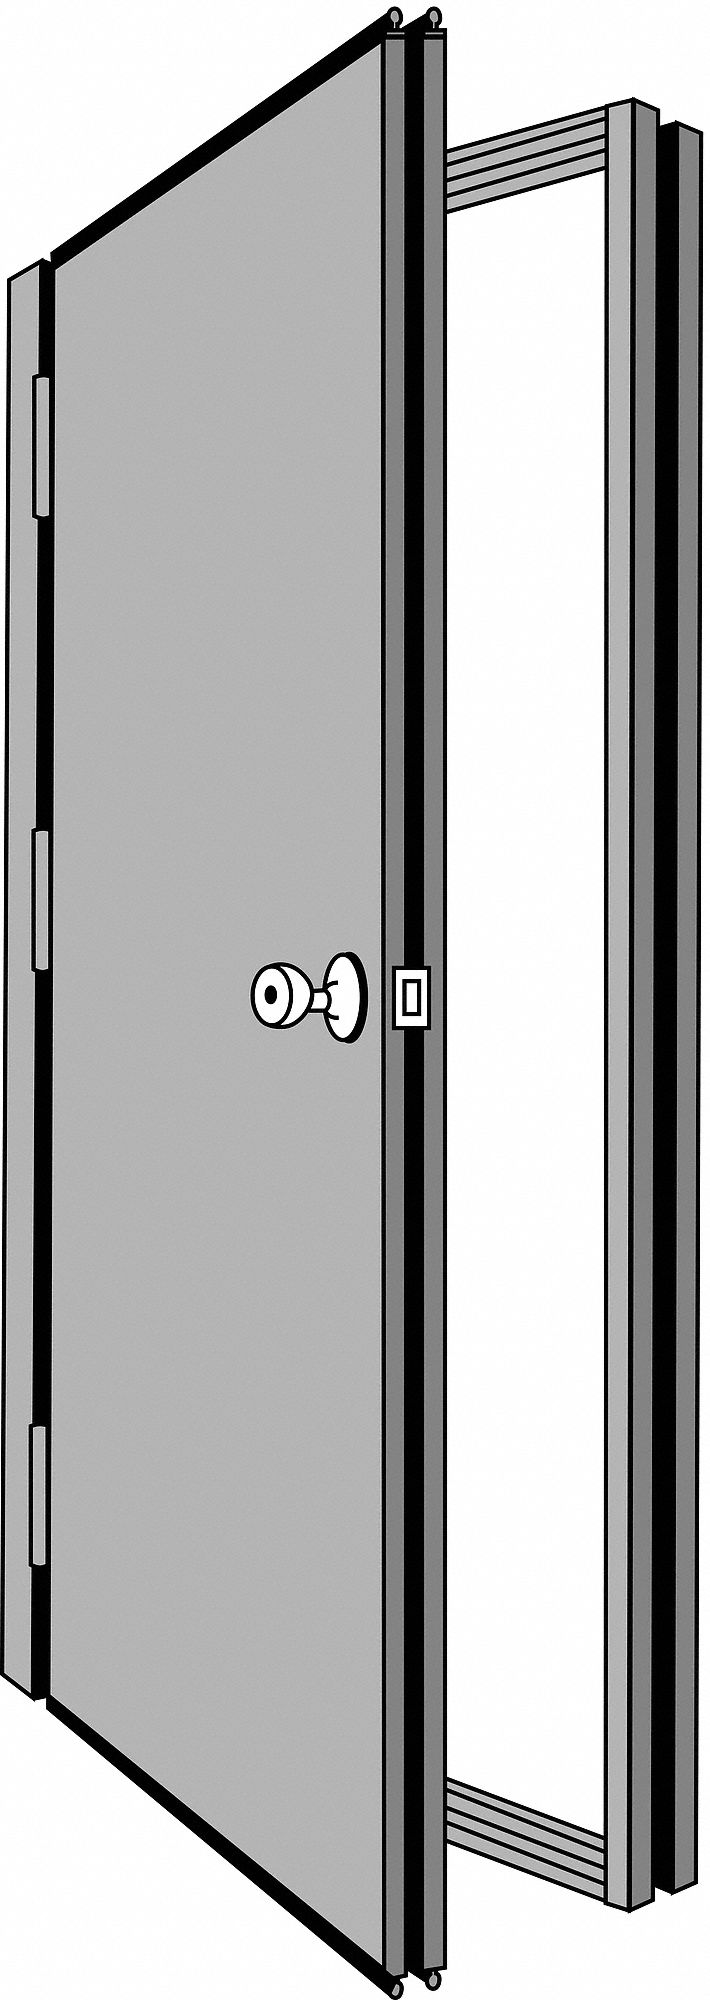 Security Door, Hand Right, 85 7/16x48 5/8